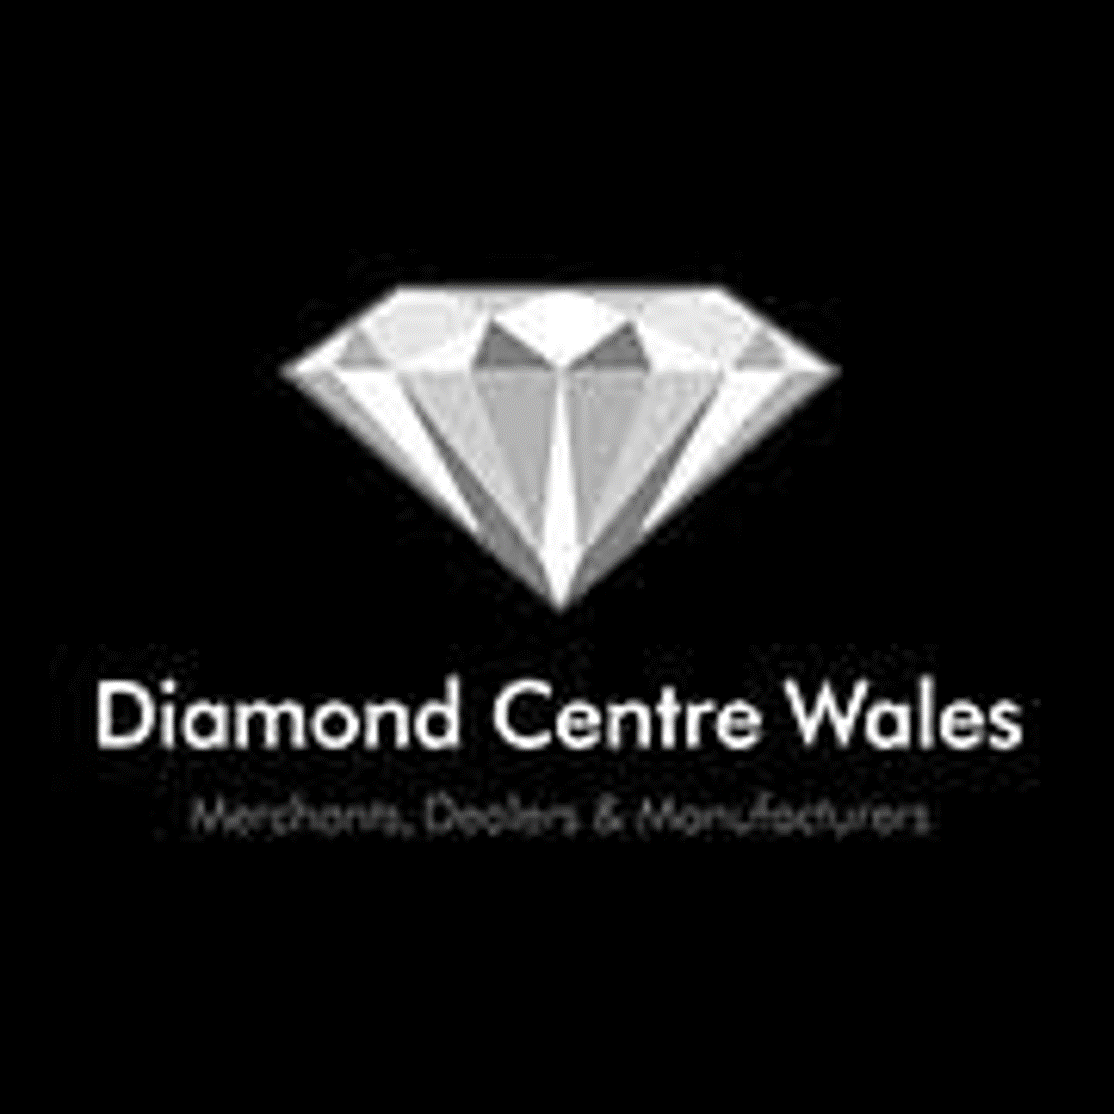 Diamond centre